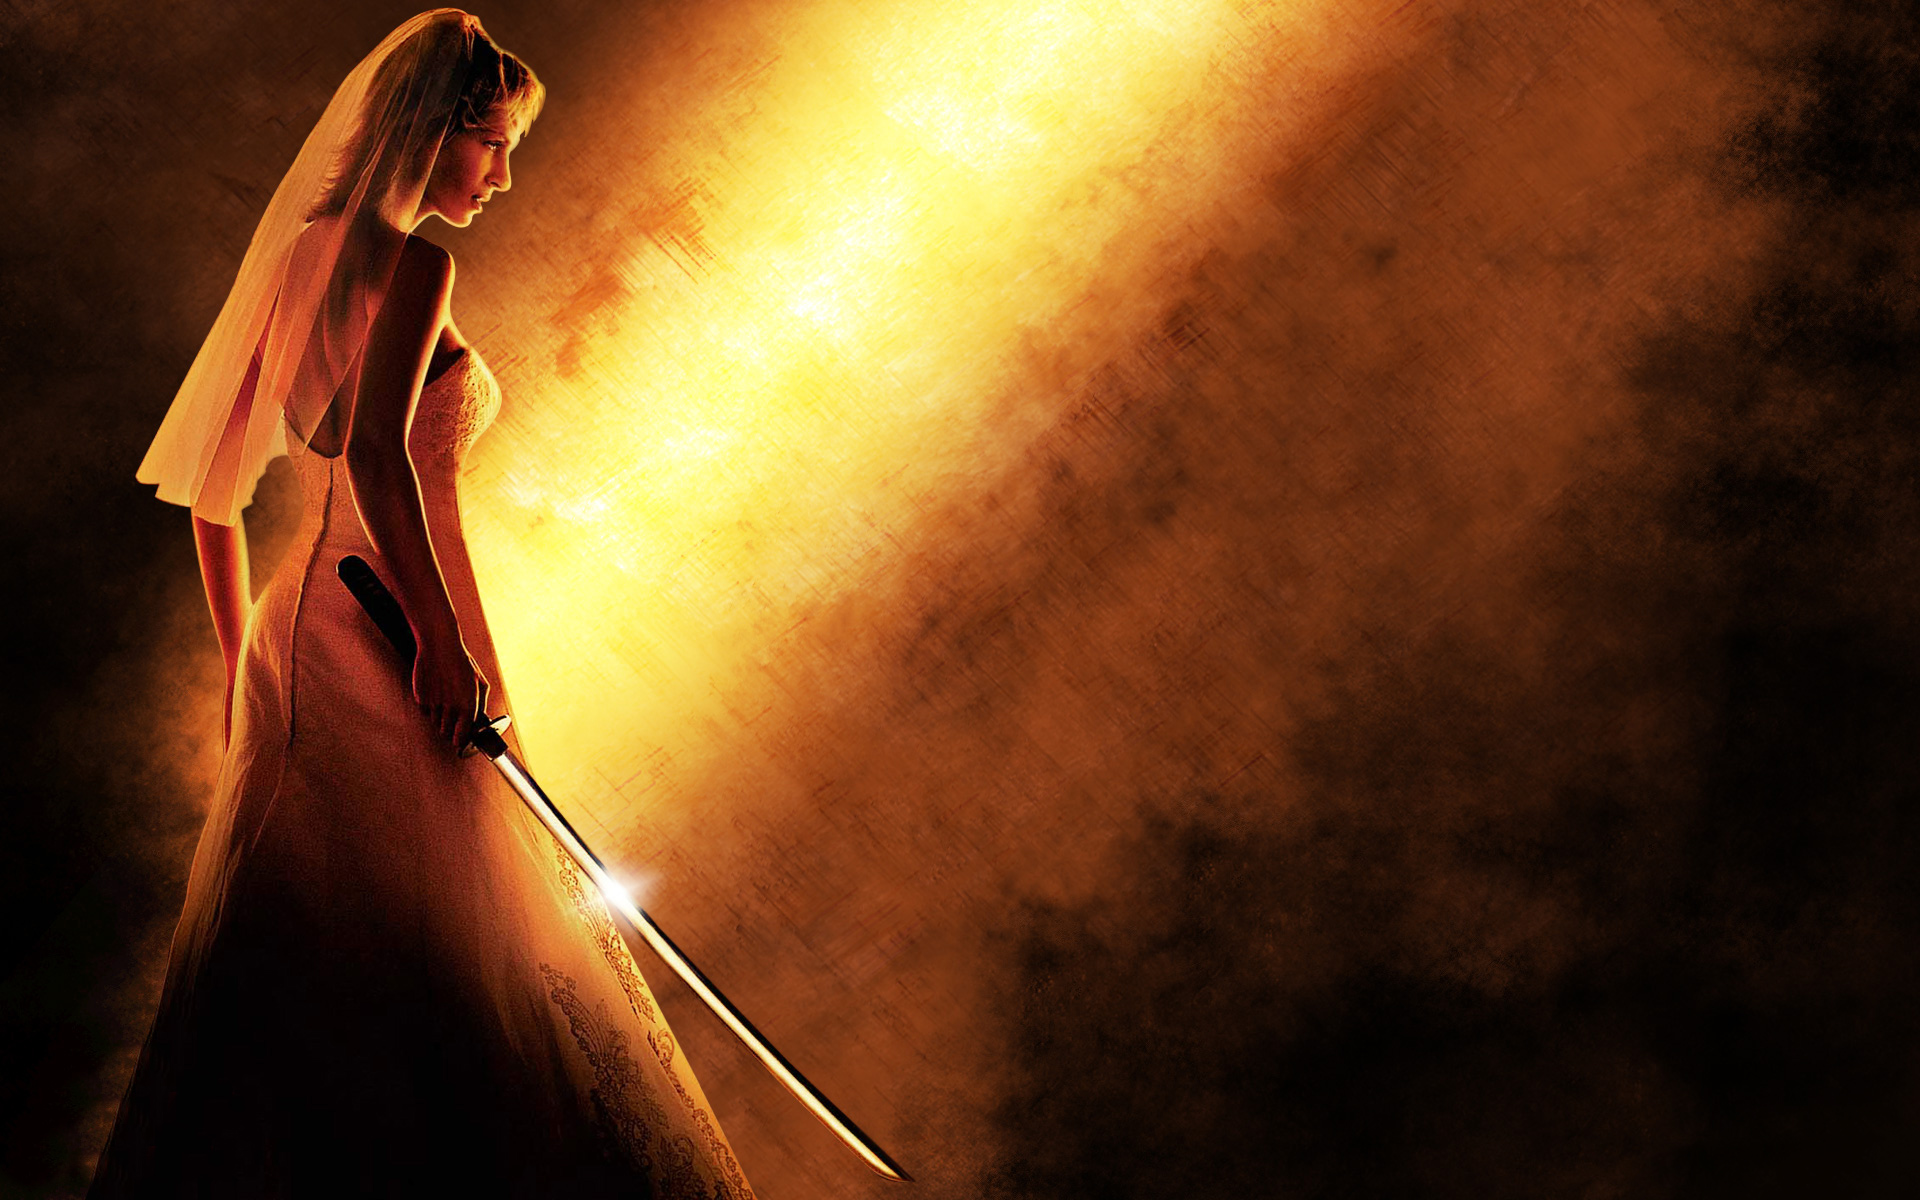 Download Kill Bill Desktop Wallpaper 54205 1920x1200 Px High